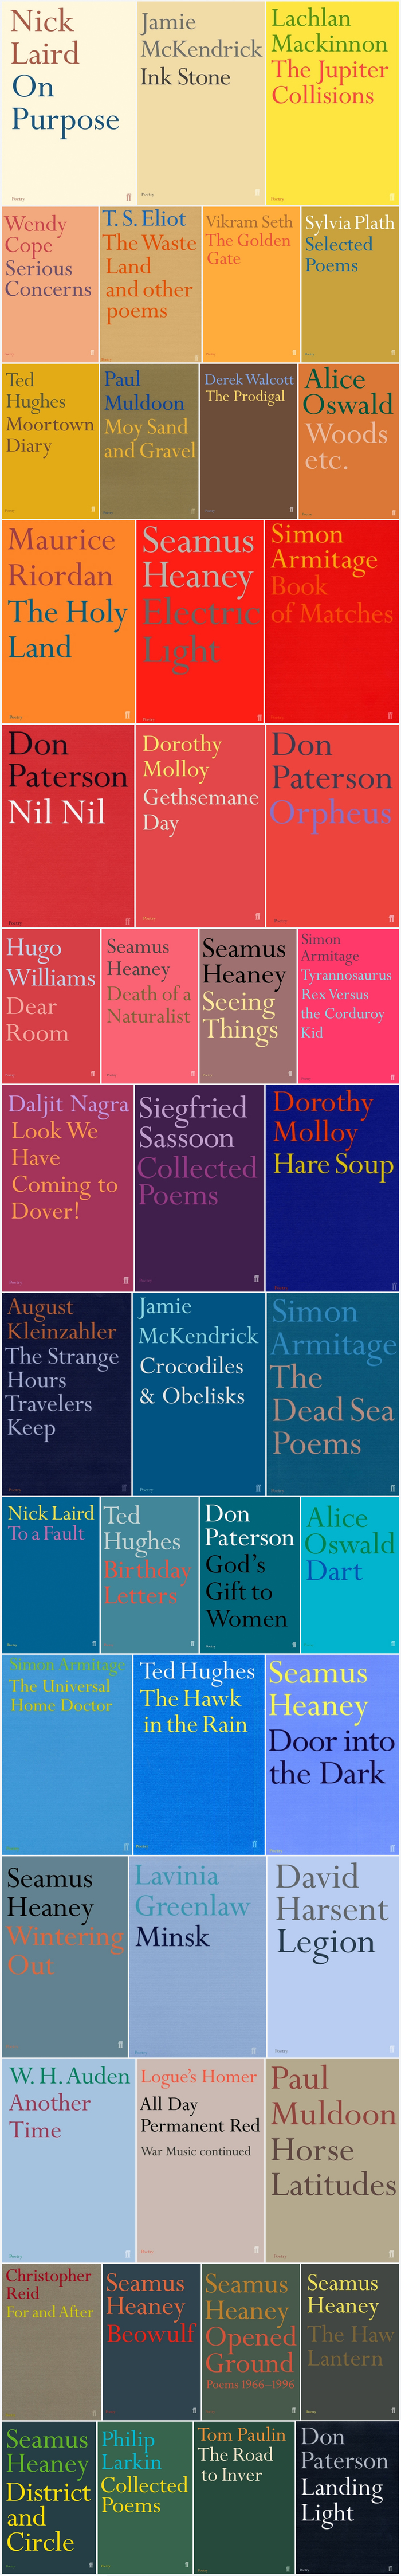 Faber Books showcases a selection of covers from the Poetry series on their Flickr photostream.